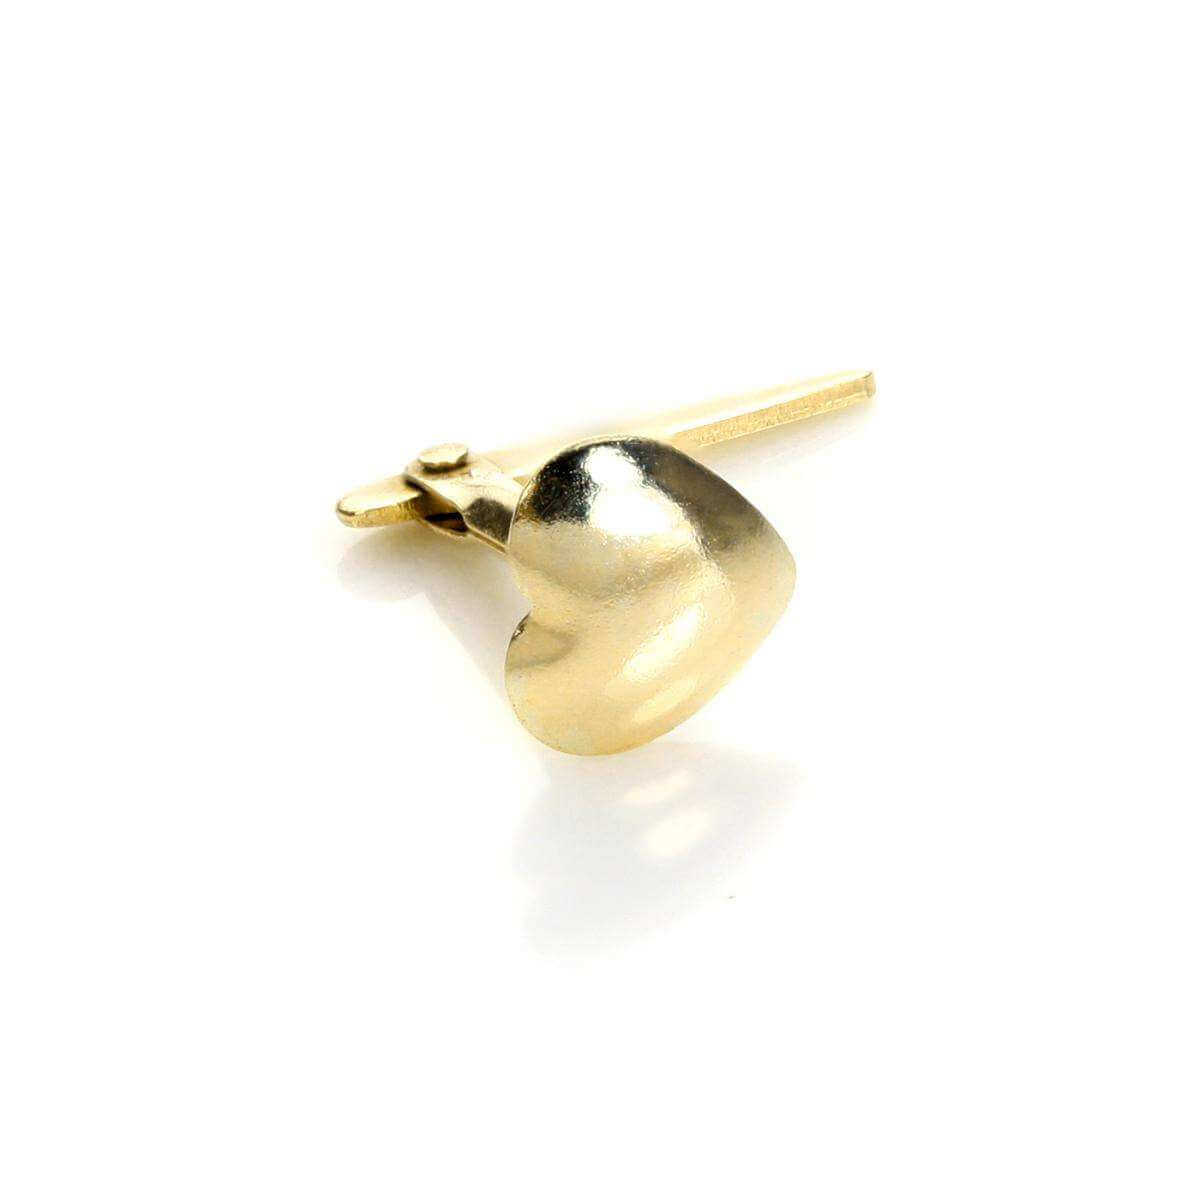 Andralok 9ct Yellow Gold Heart Nose Stud